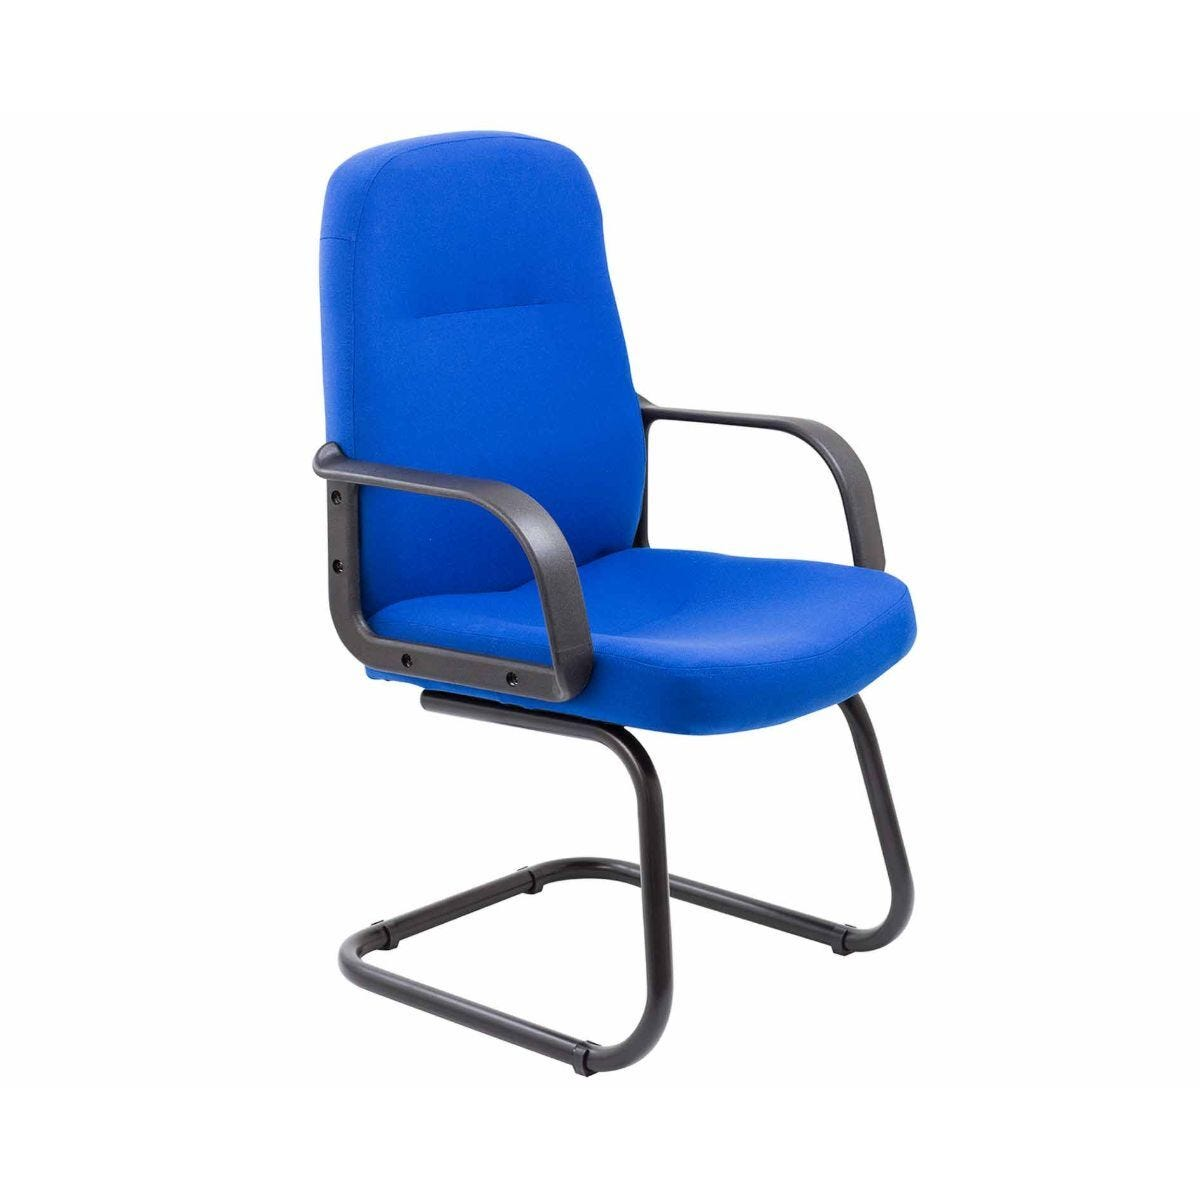 TC Office Canasta 2 Fabric Visitor Executive Chair Royal Blue